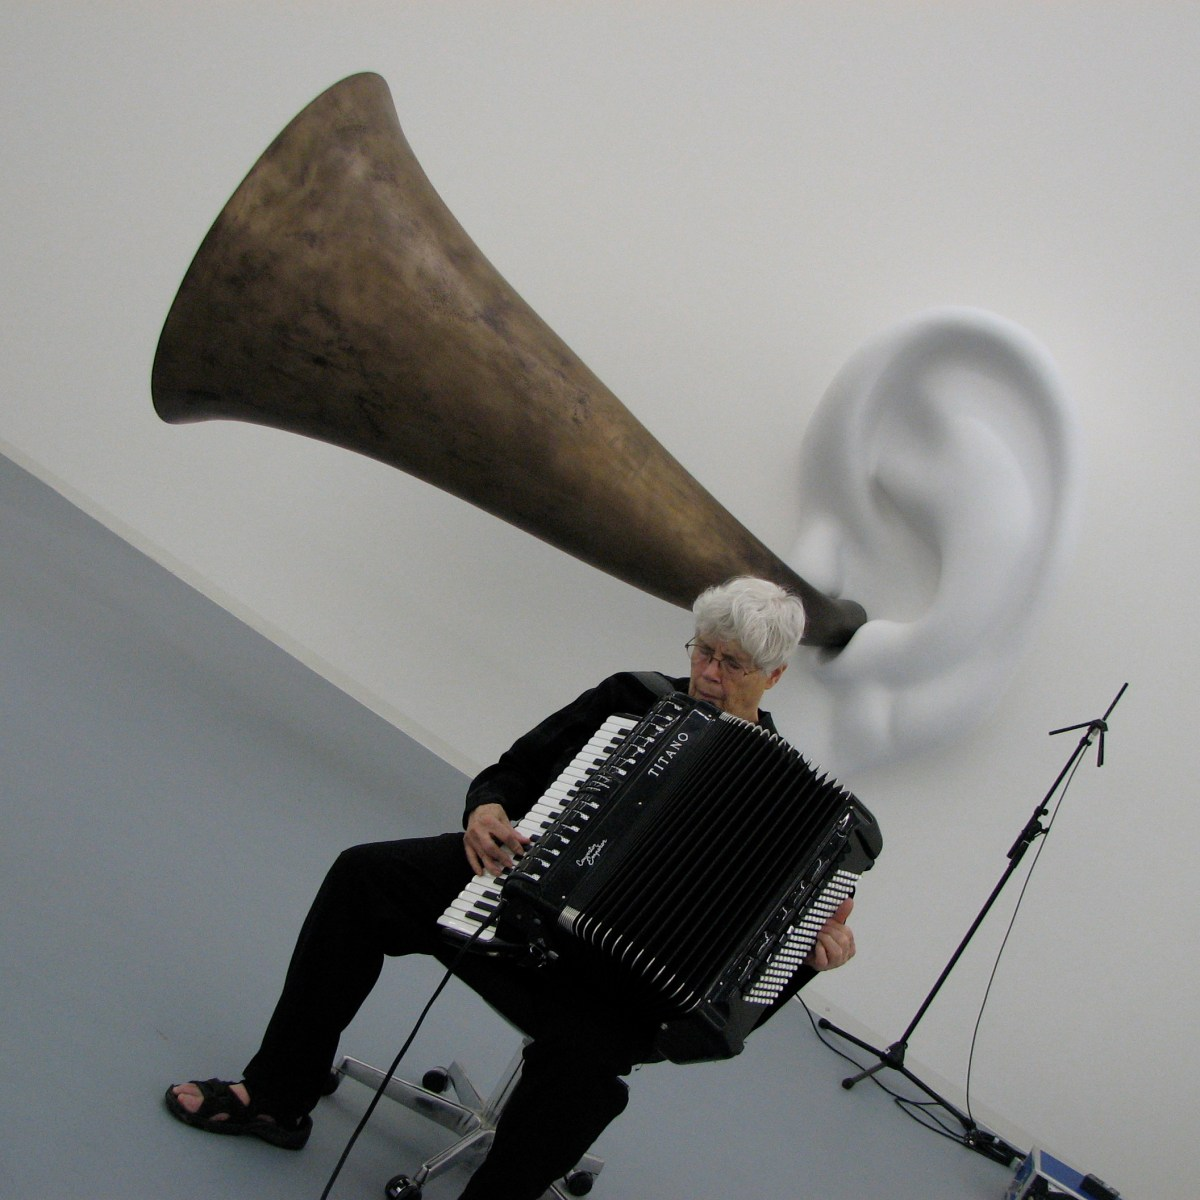 An image of composer and musician Pauline Oliveros performing. The orientation of the image is skewed, so the floor is slanted and angles down to the right. Oliveros sits on a chair with a large accordion, her head is tilted down, her eyes are closed, and she has an expression of deep concentration. Oliveros sits in a large gallery room, and behind her there is a giant white ear on the wall with a huge, brass ear horn.